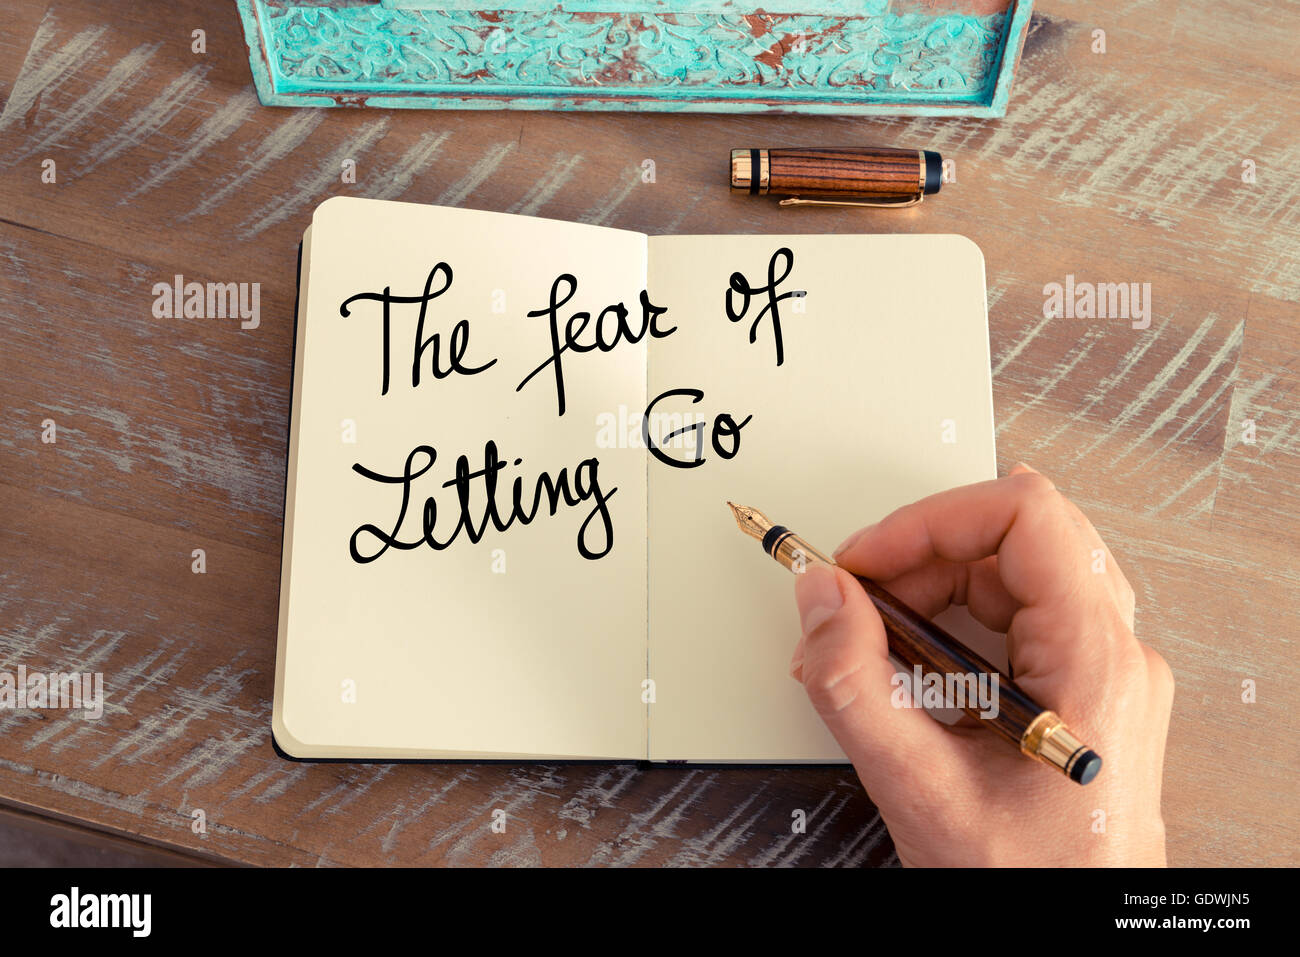 Handwritten text The Fear Of Letting Go as concept image. - Stock Image